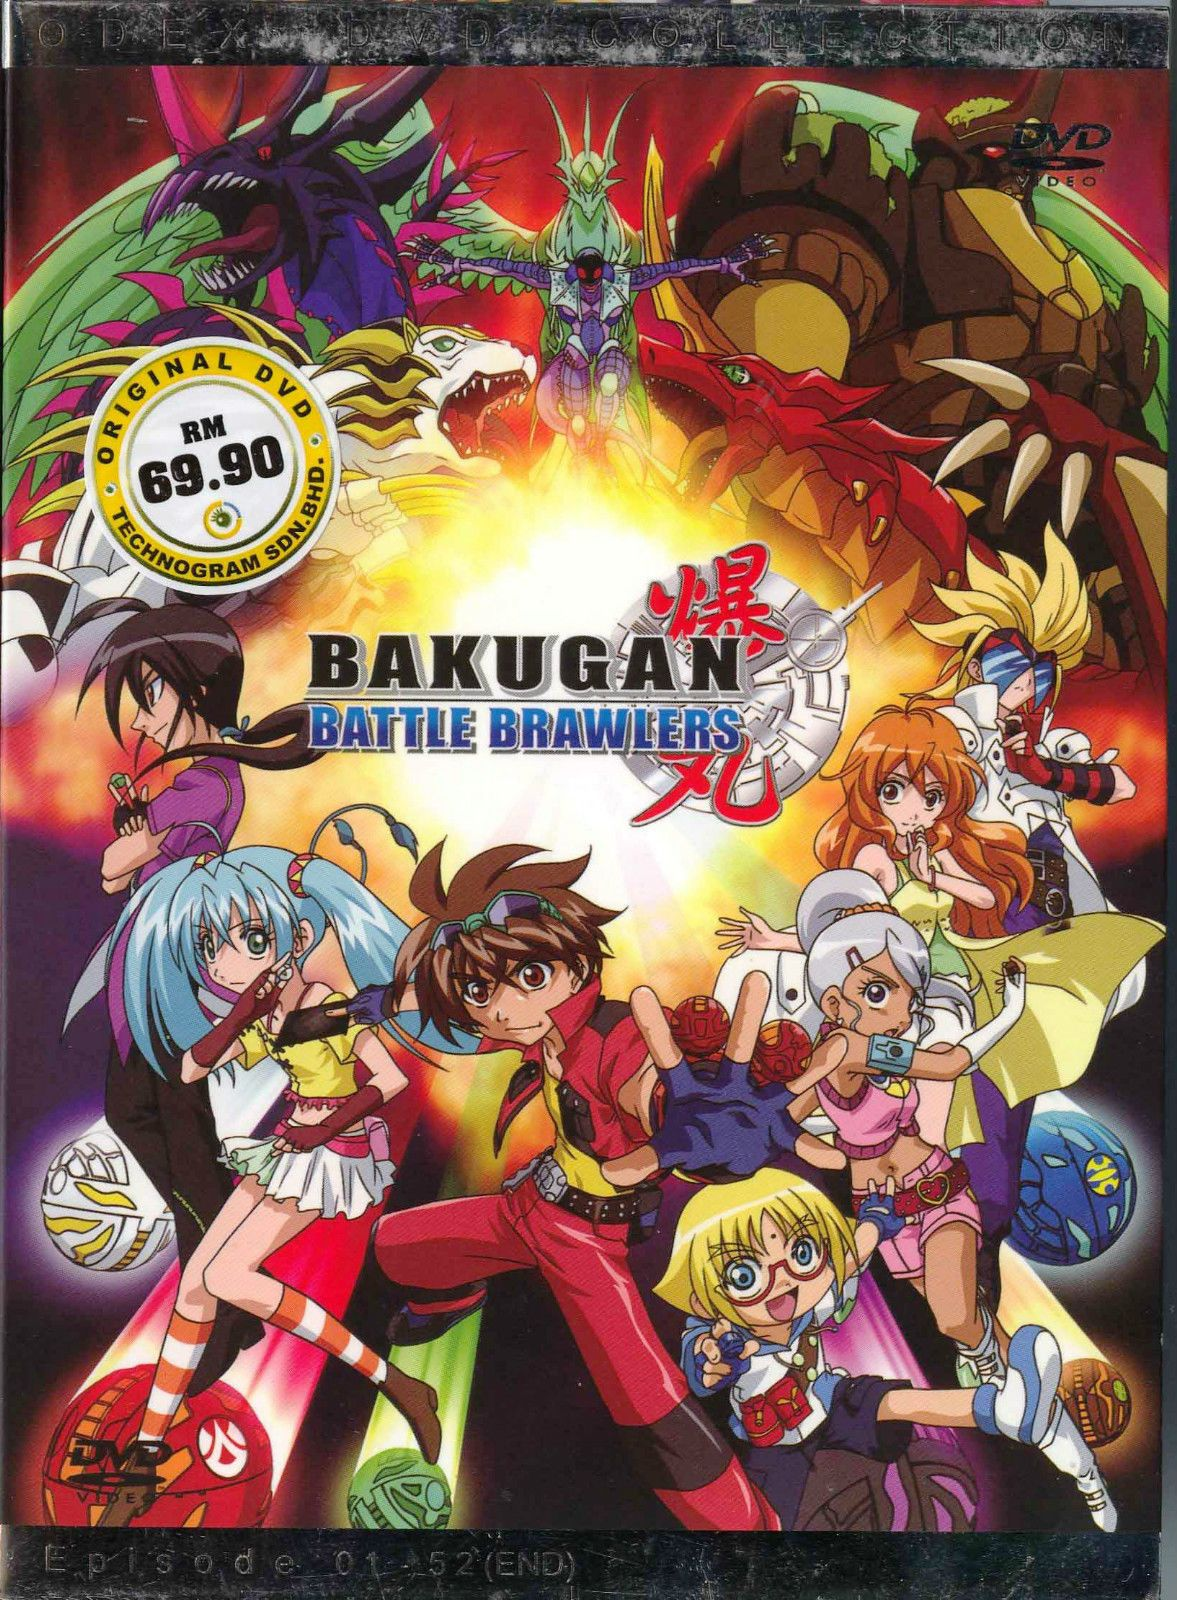 DVD ANIME BAKUGAN BATTLE BRAWLERS Season 1 Episode 152End